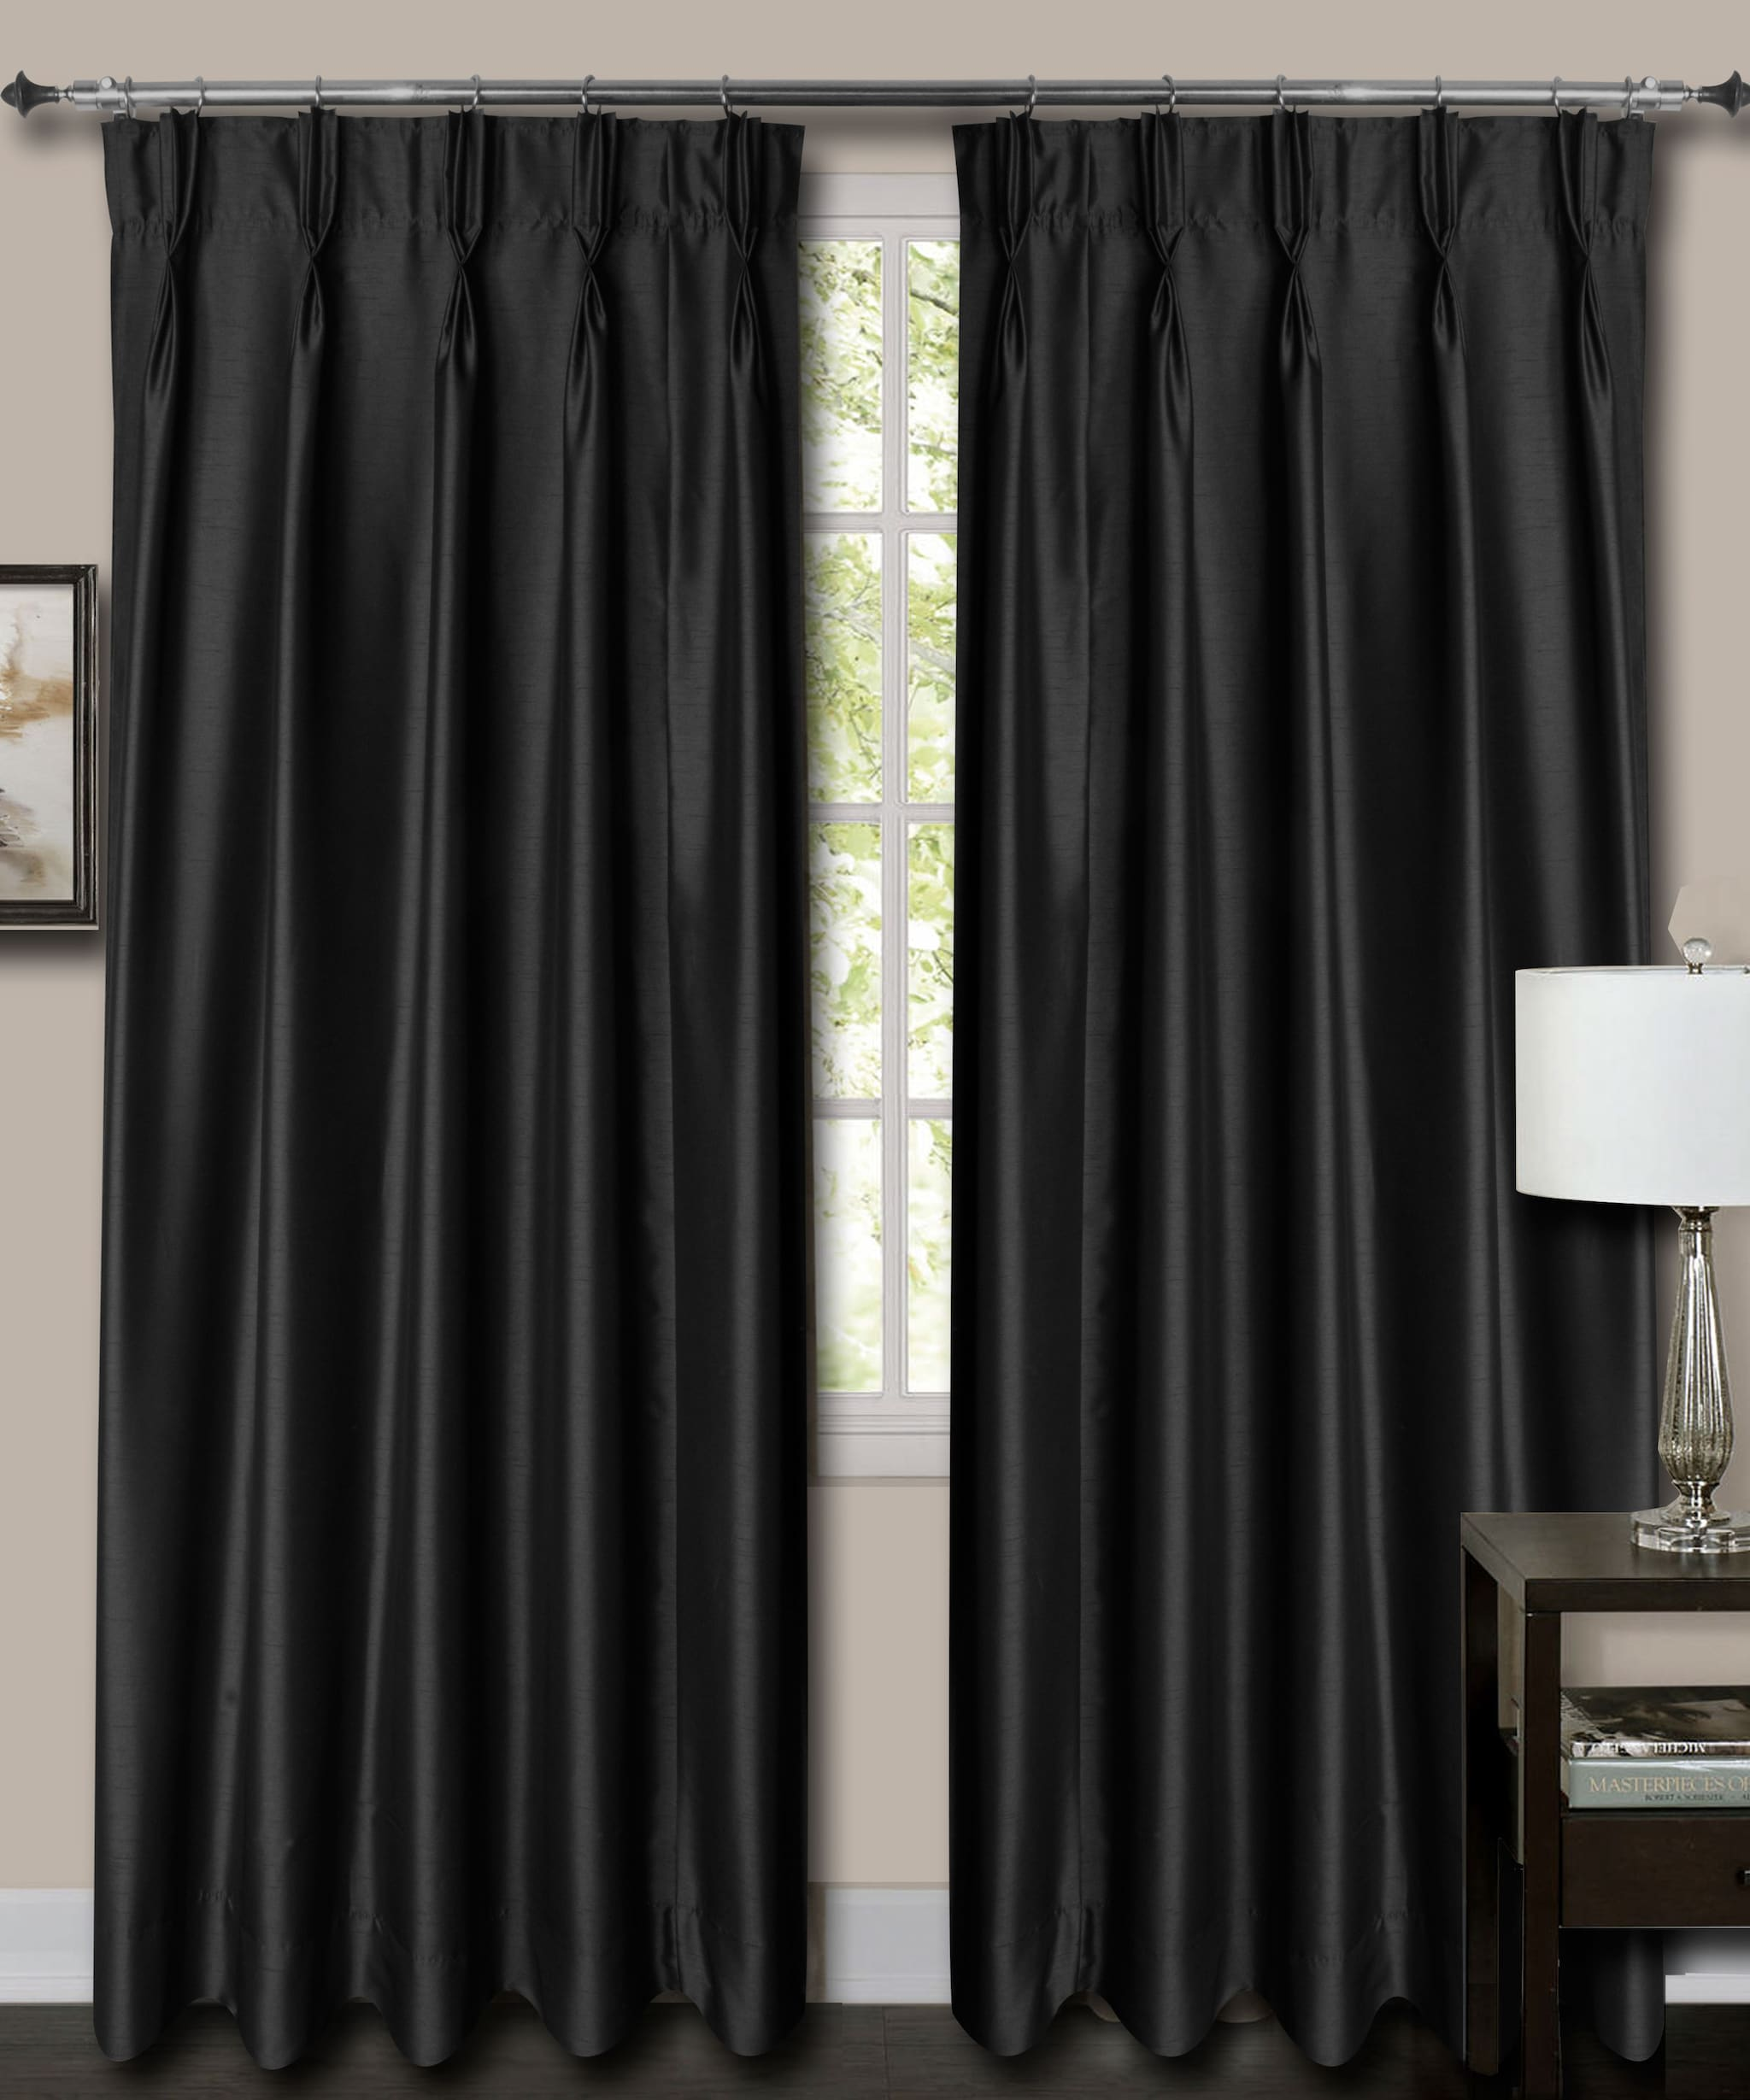 "French Pleat Top Black Faux Silk Dupioni Curtains. (65"" Wide,9 Feet Long,Without Lining)"